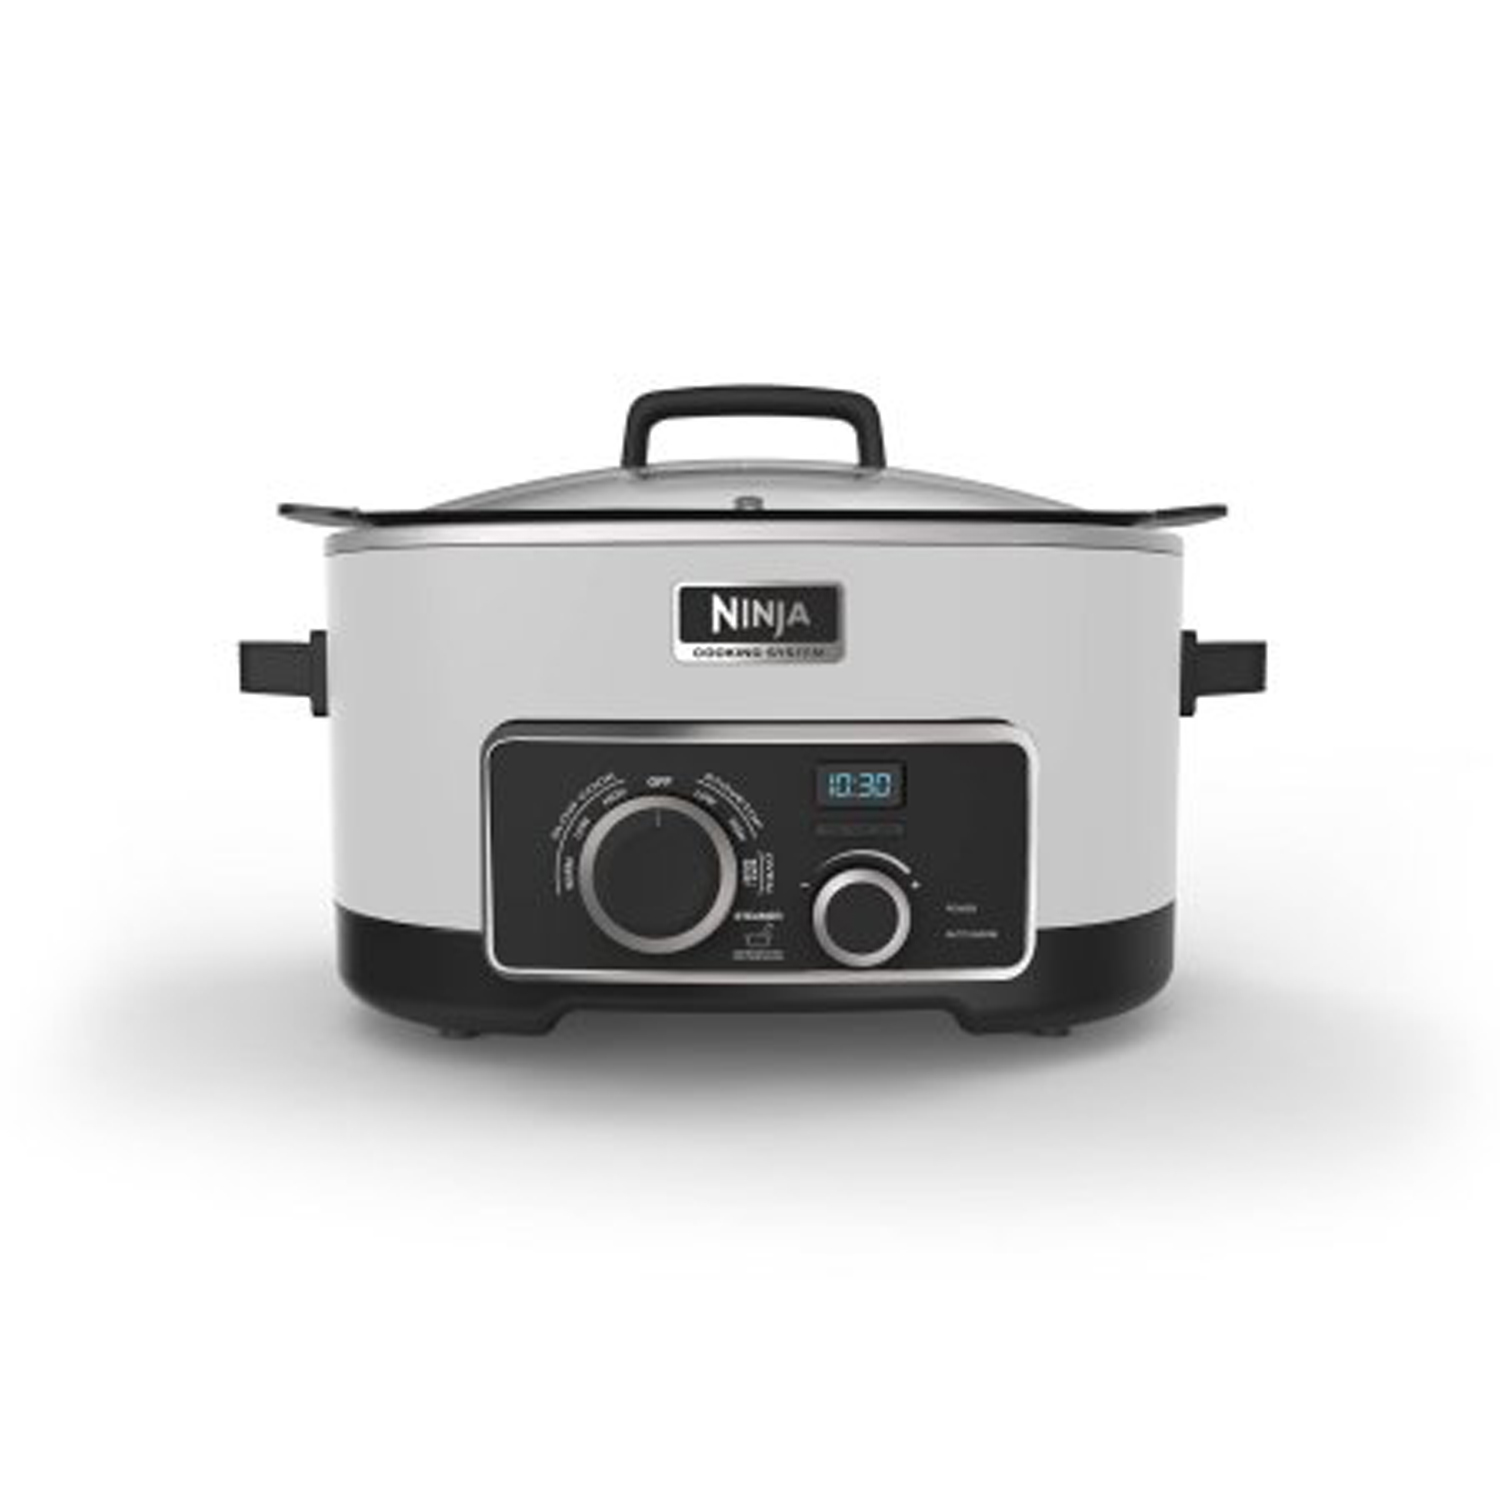 Ninja Corp 4-in-1 Slow Cooker, MC900QWH